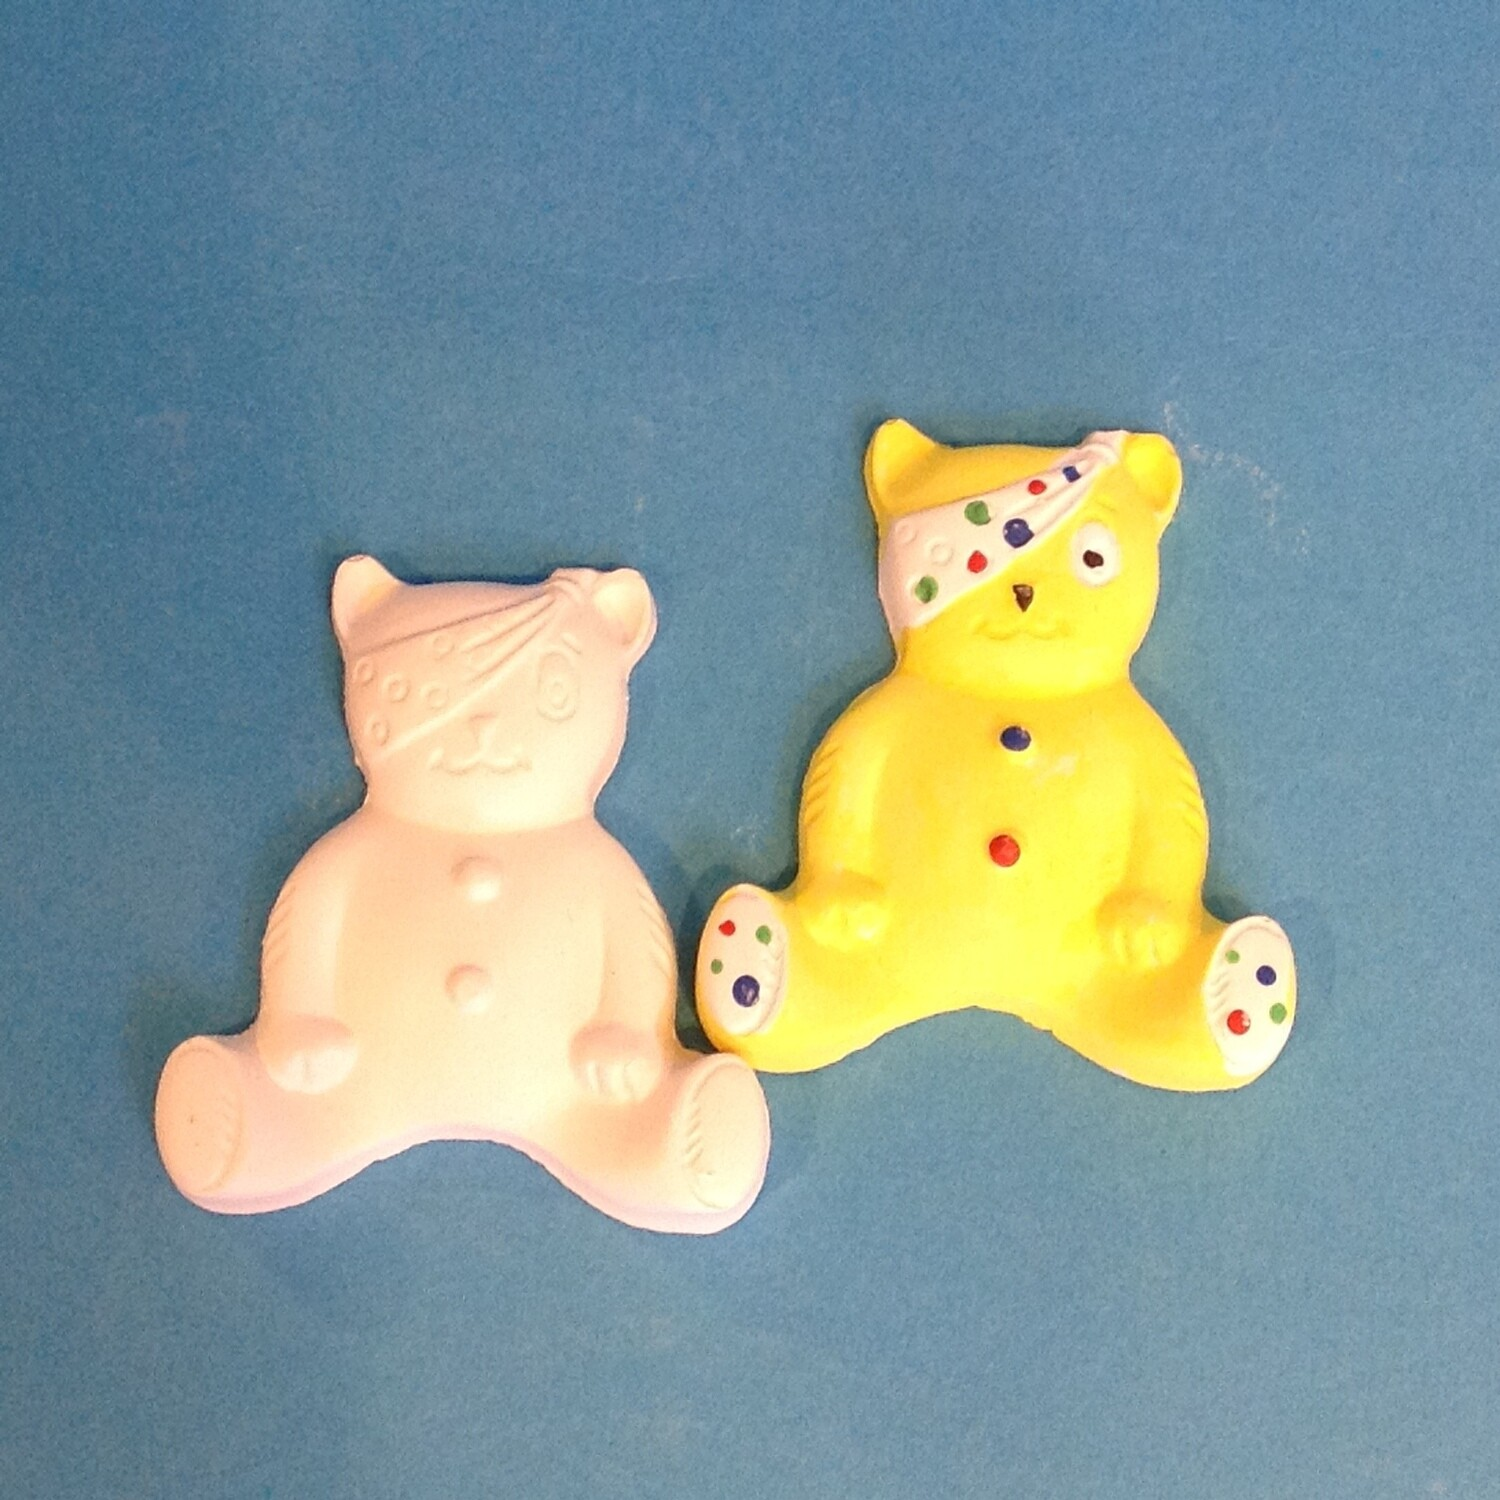 Pudsey, small plaster of paris, unpainted (100% to CiN)